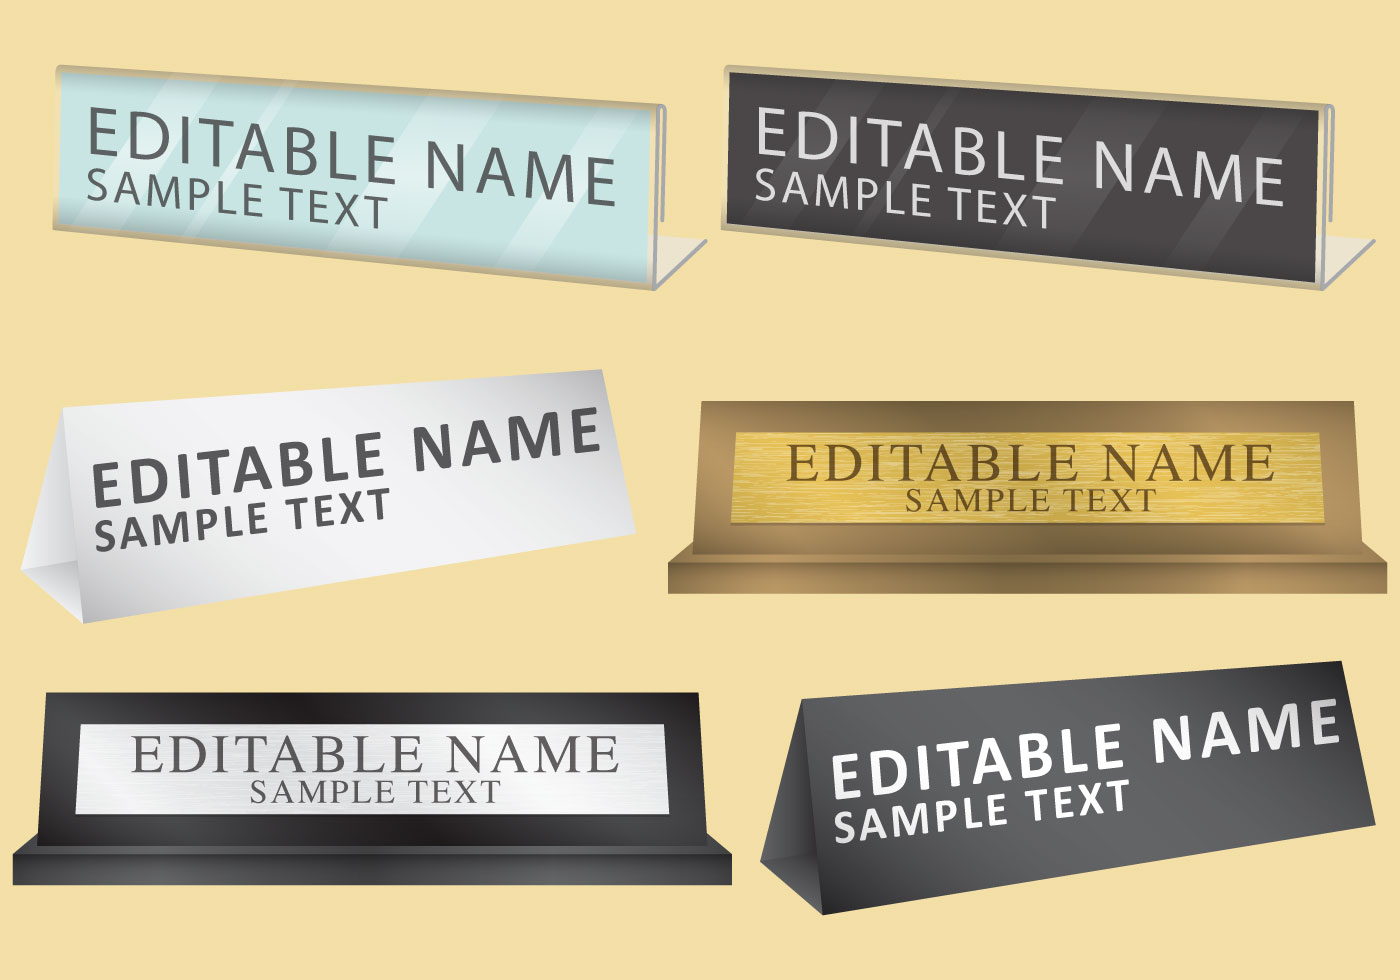 Name Plate: Download Free Vector Art, Stock